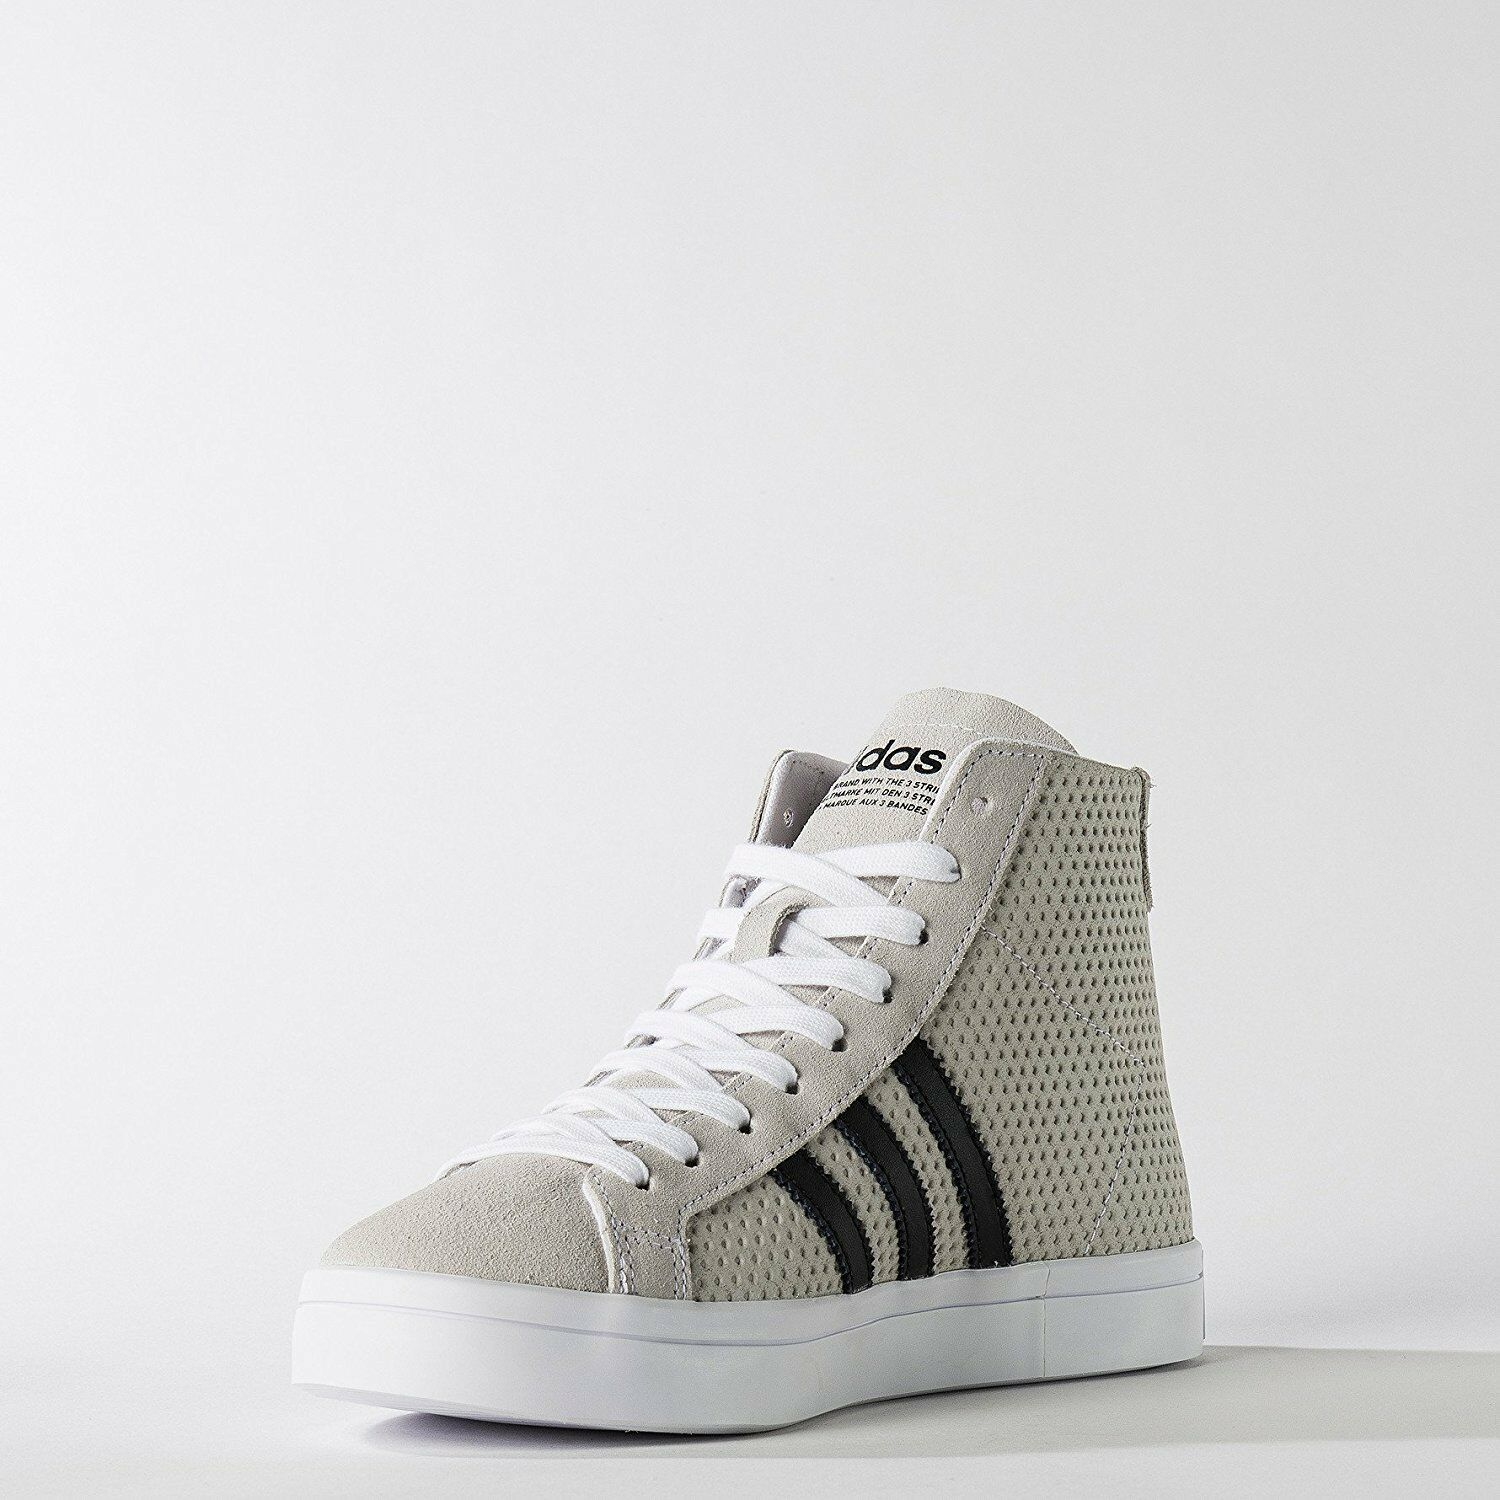 ~nib~Adidas COURT VANTAGE MID Shoes Honey Courtvantage Superstar~Donna size 10